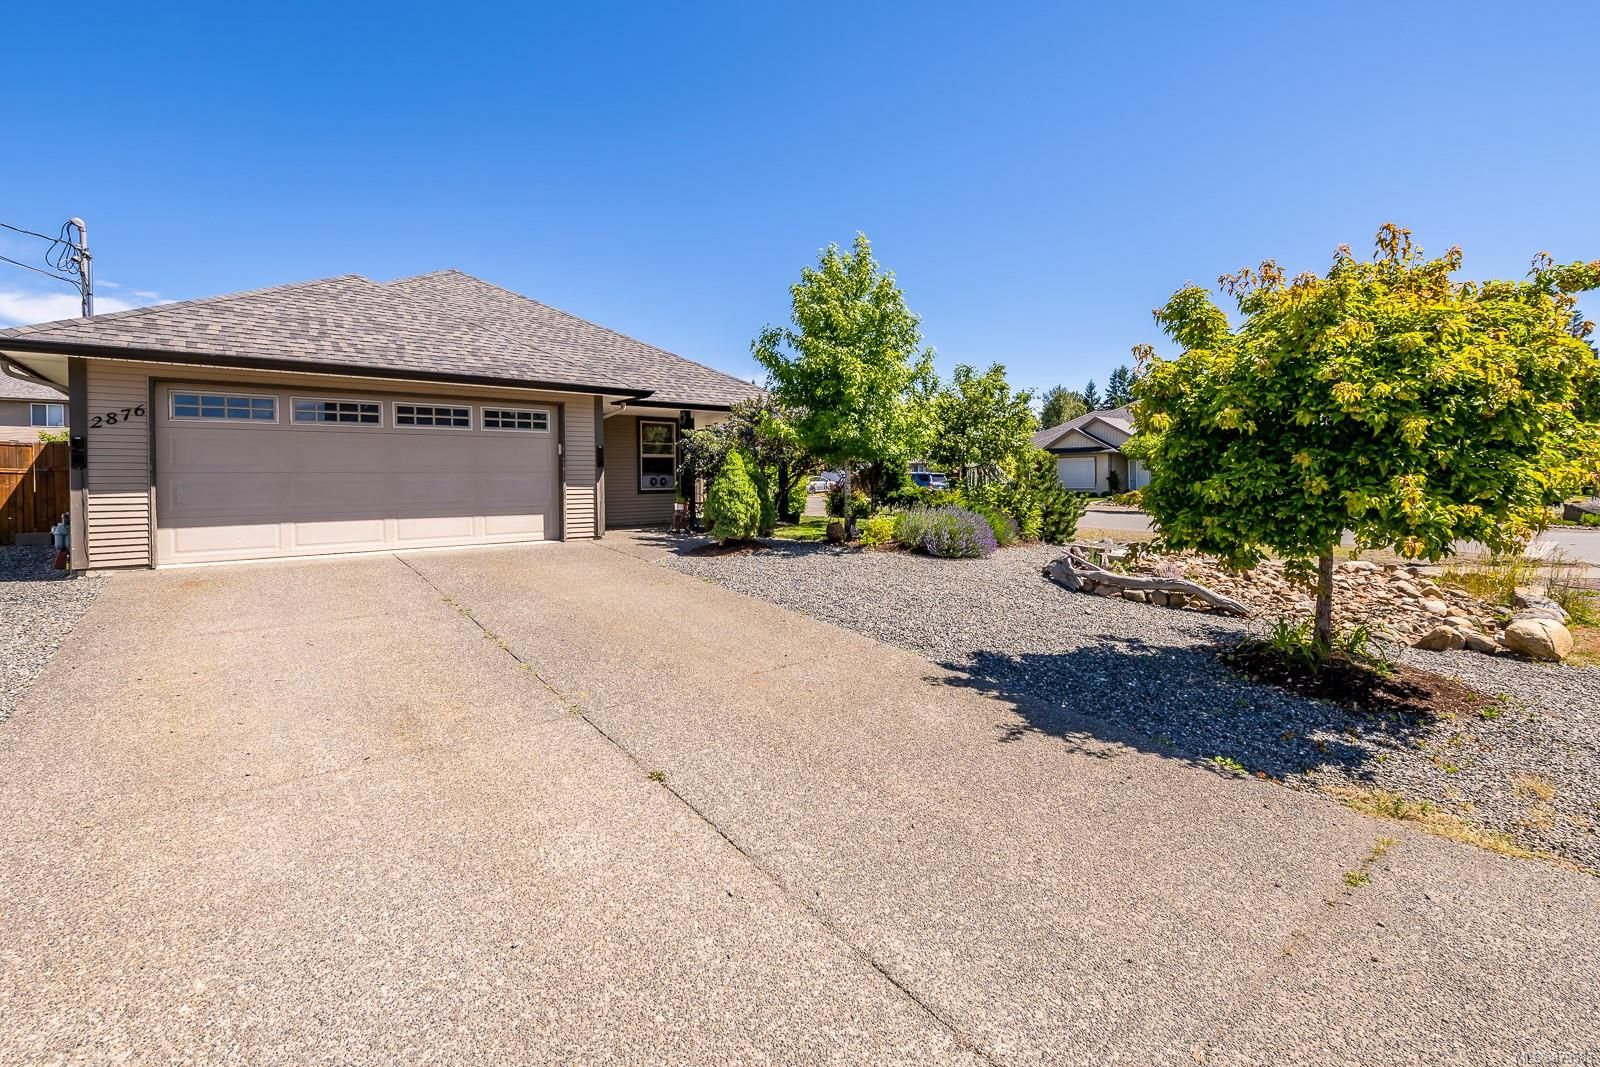 Main Photo: 2876 Ulverston Ave in : CV Cumberland House for sale (Comox Valley)  : MLS®# 879581